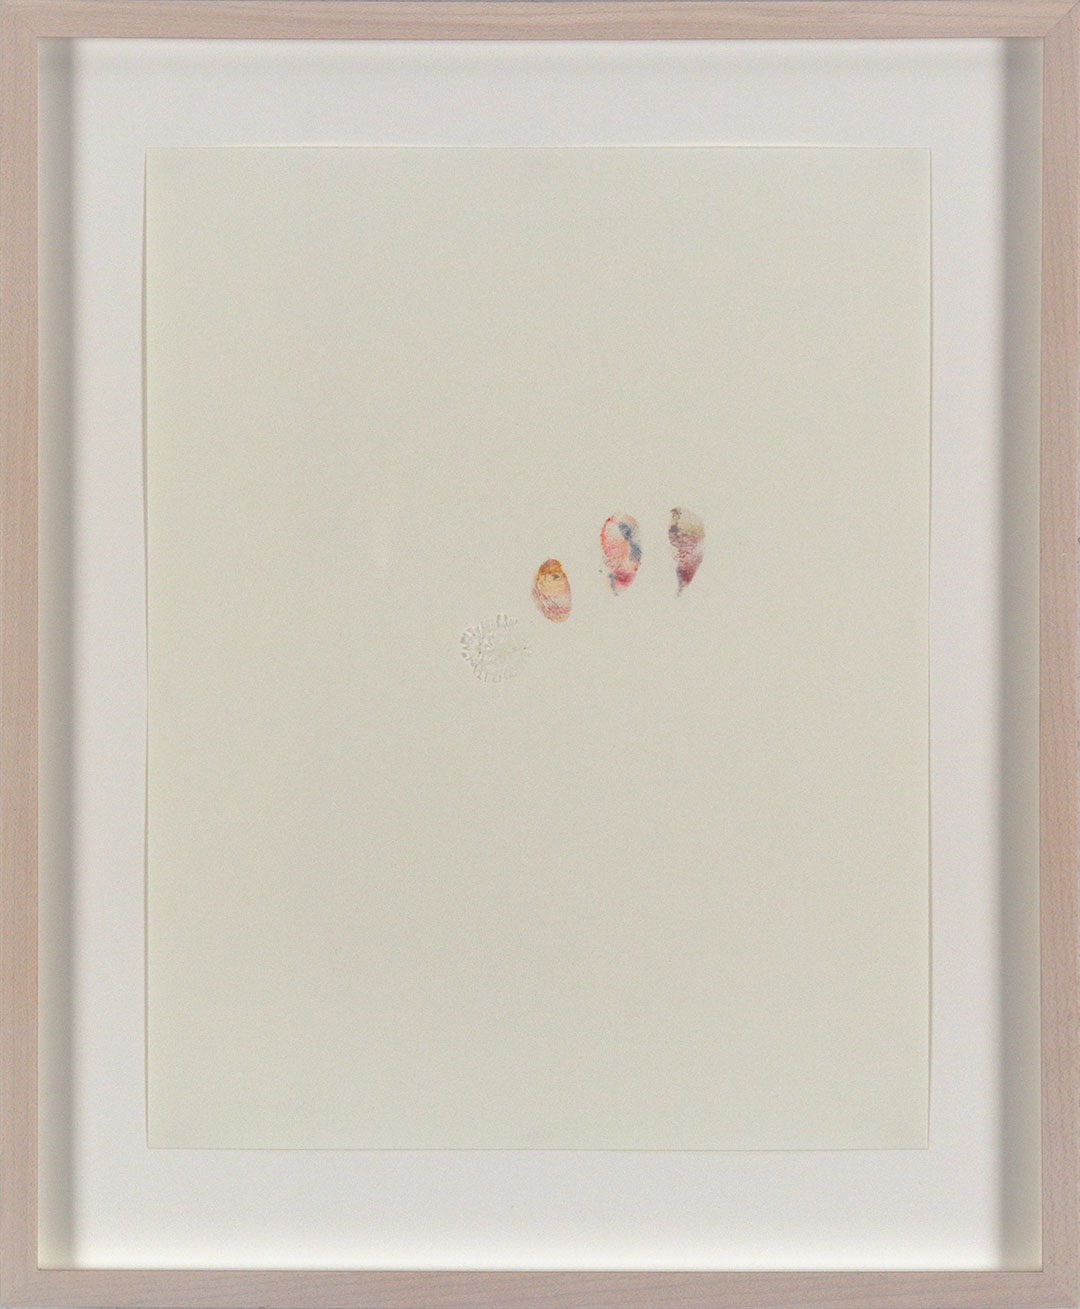 """Self 7, 2005, dry pastel pigment and tracing paper on Strathmore paper. Framed 12.25 x H15"""" x D0.5""""."""